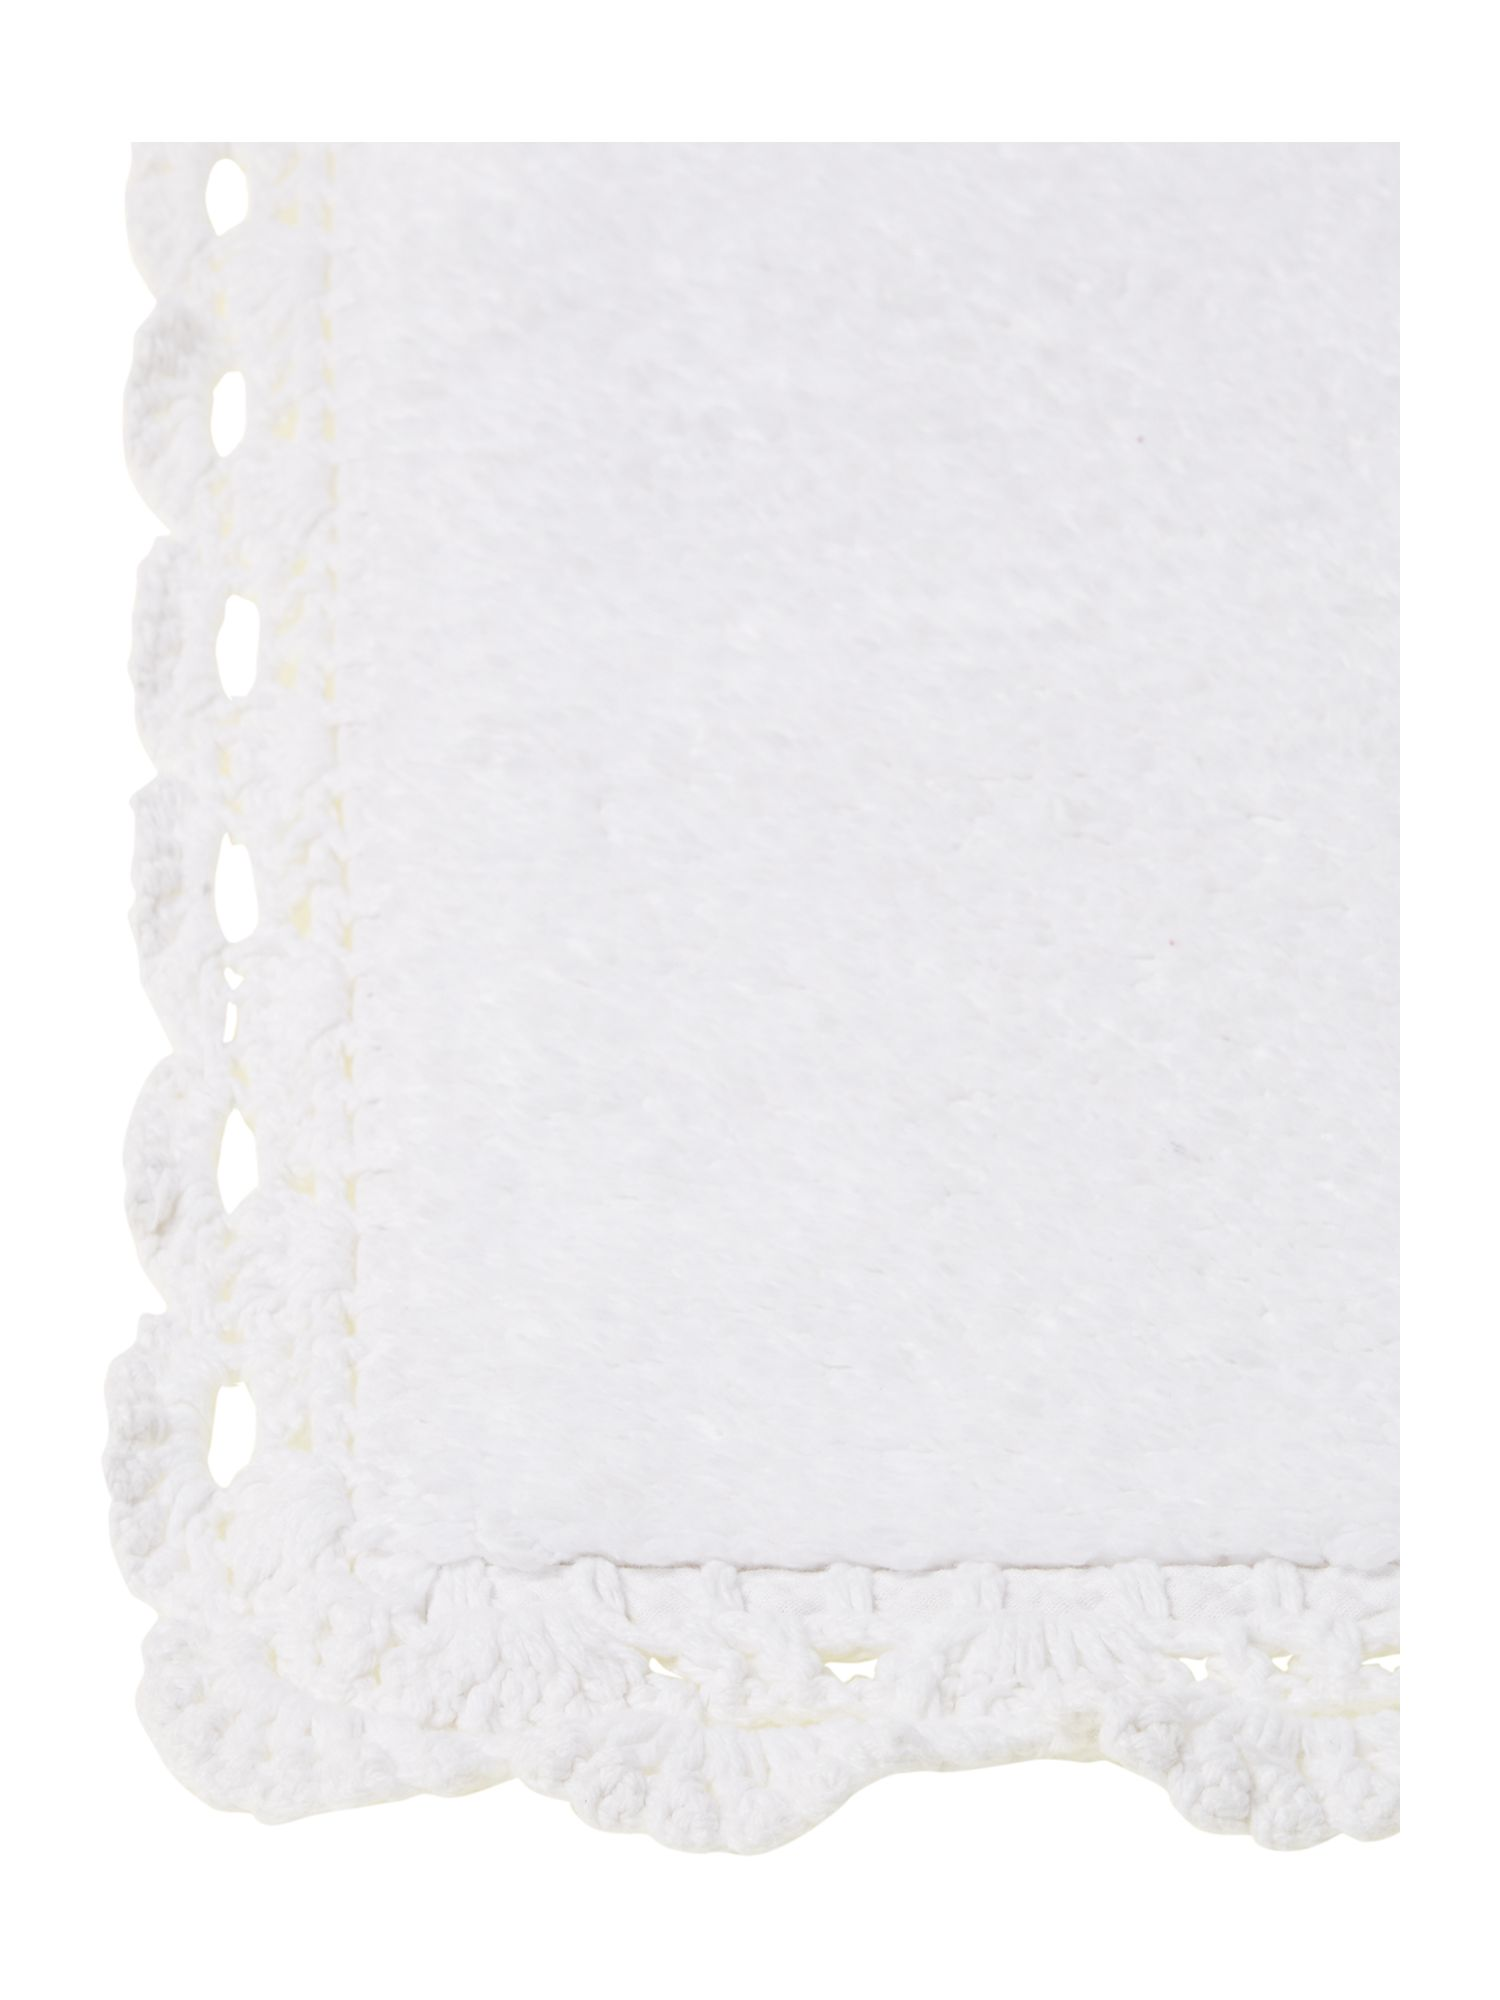 REVERSIBLE LACE EDGE BATH MAT